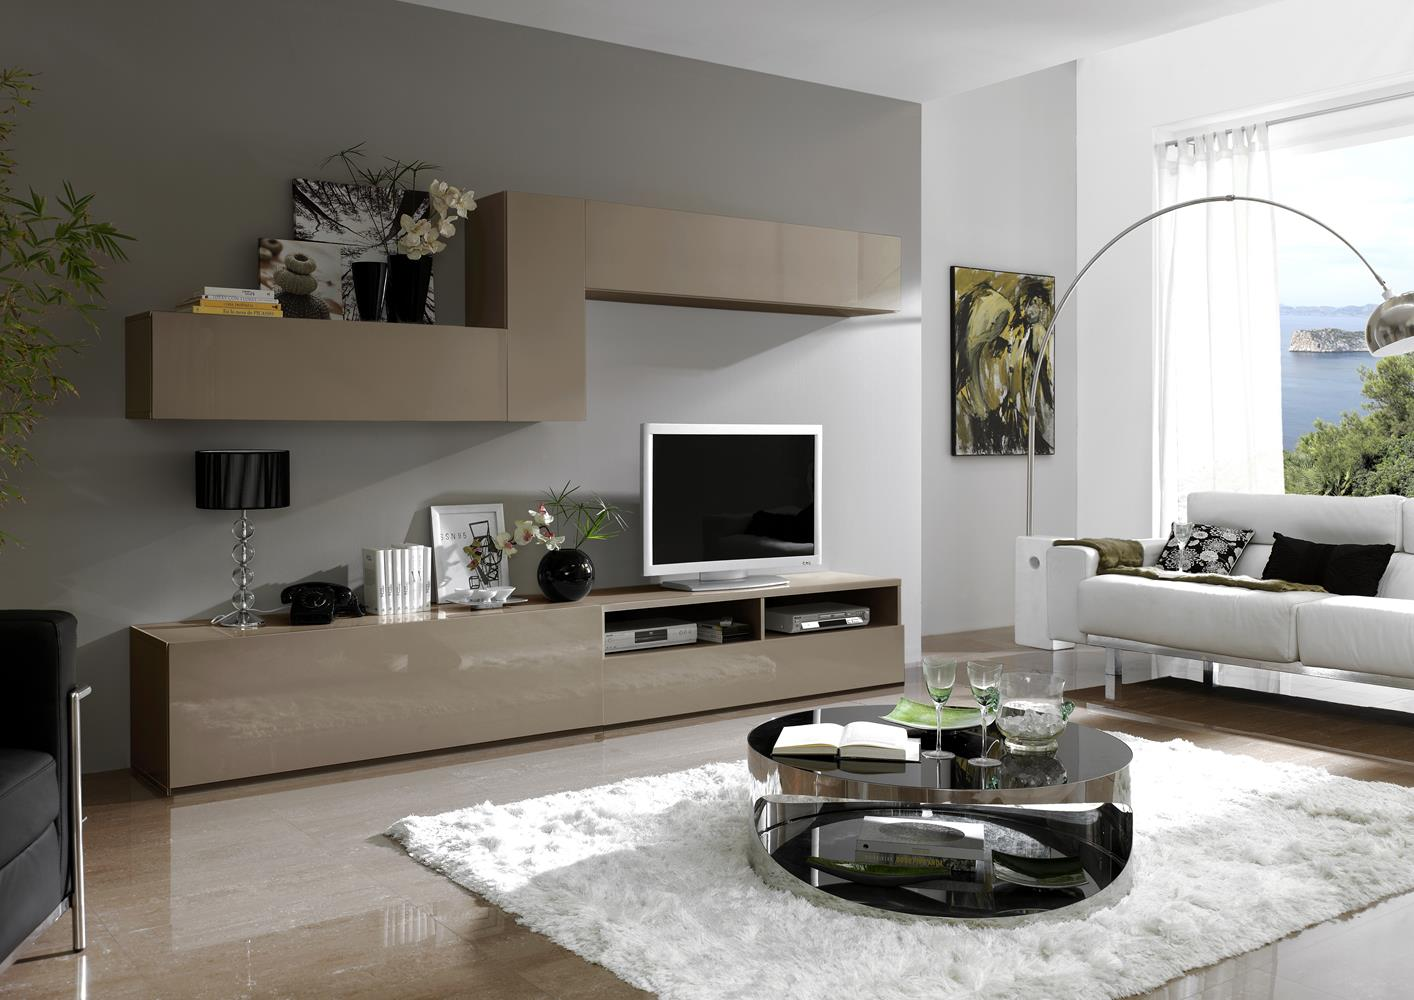 acheter votre composition murale contemporaine laqu e brun chez simeuble. Black Bedroom Furniture Sets. Home Design Ideas